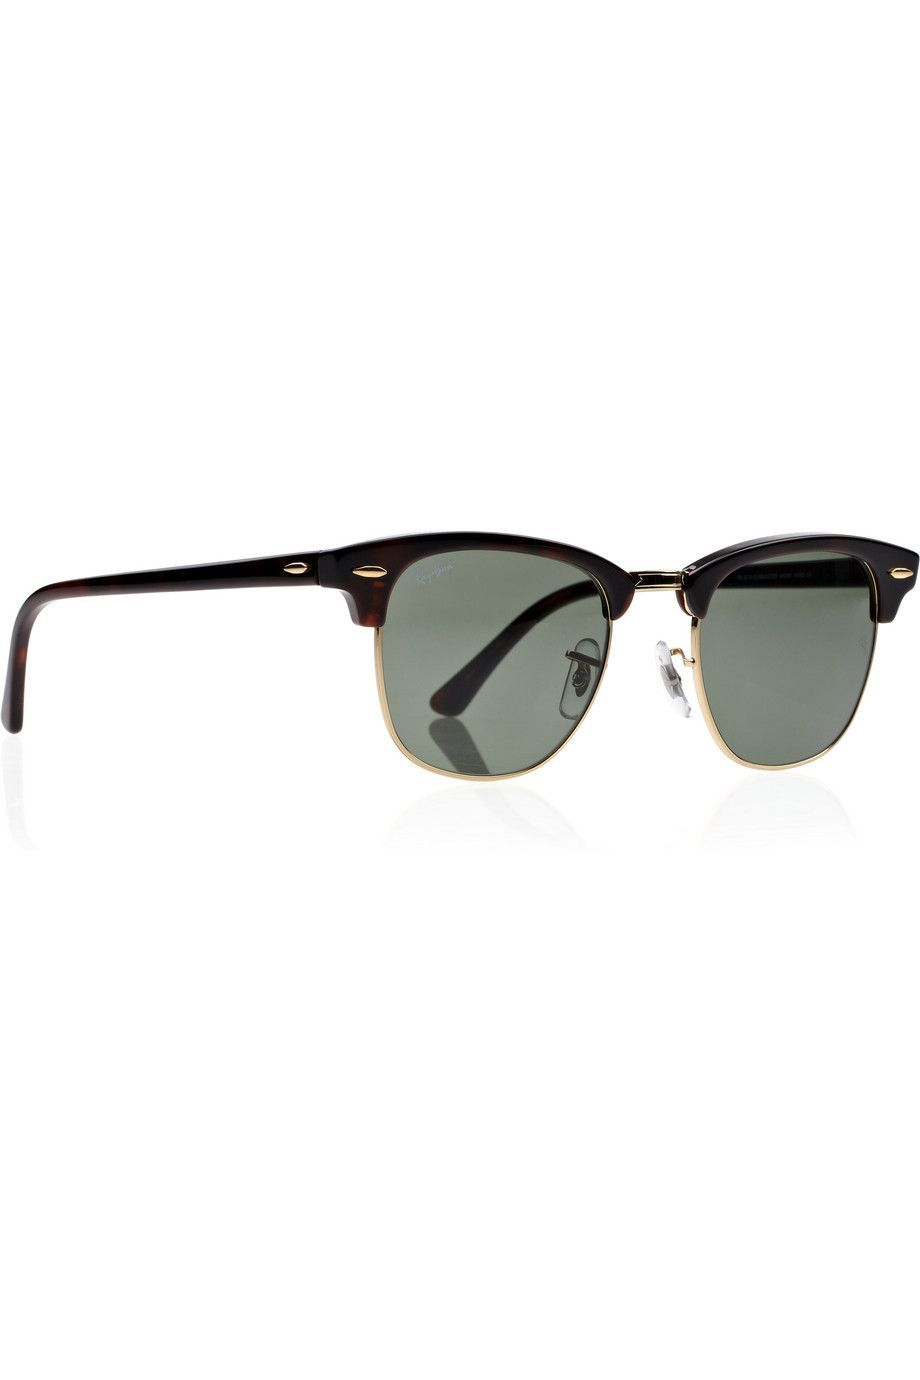 bcf52bdb13 Ray-Ban Clubmaster half-frame acetate sunglasses. Considering these as my  2nd pair.